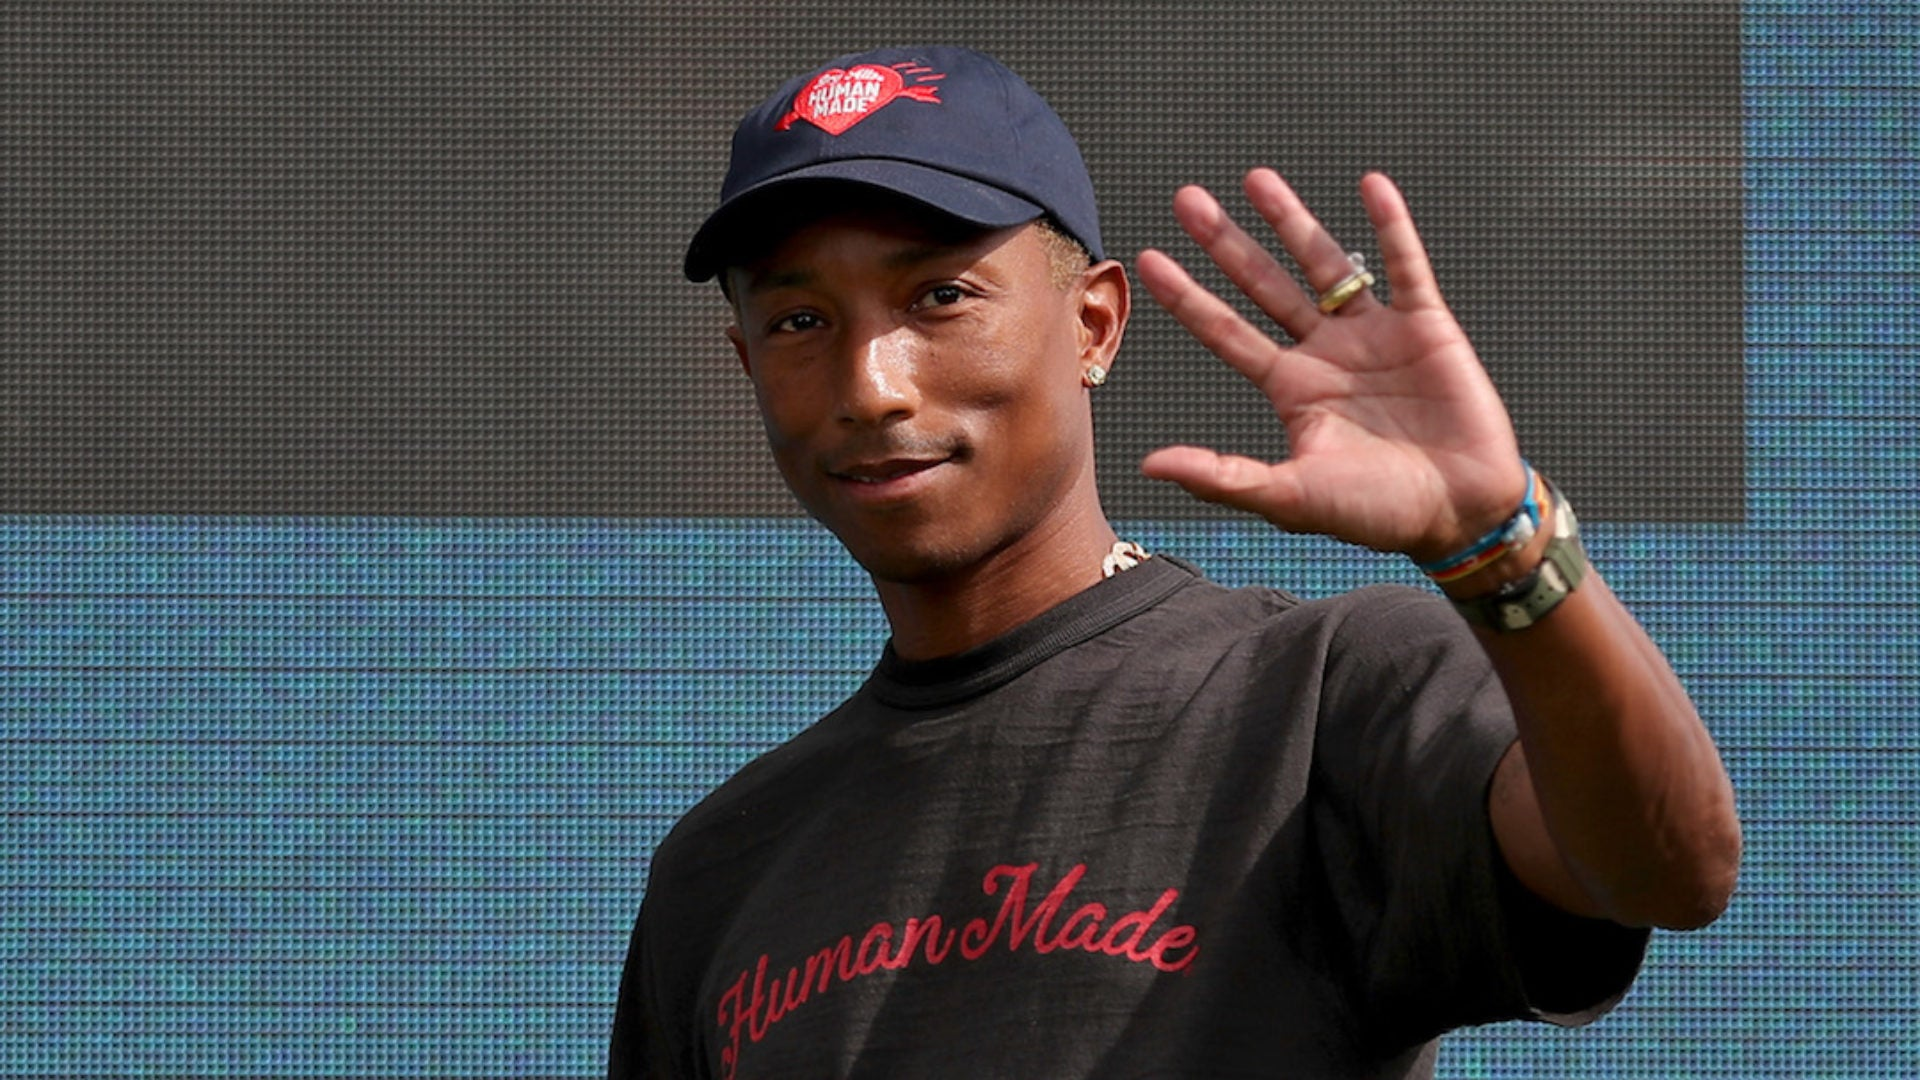 Pharrell says he's 'embarrassed' by Blurred Lines lyrics